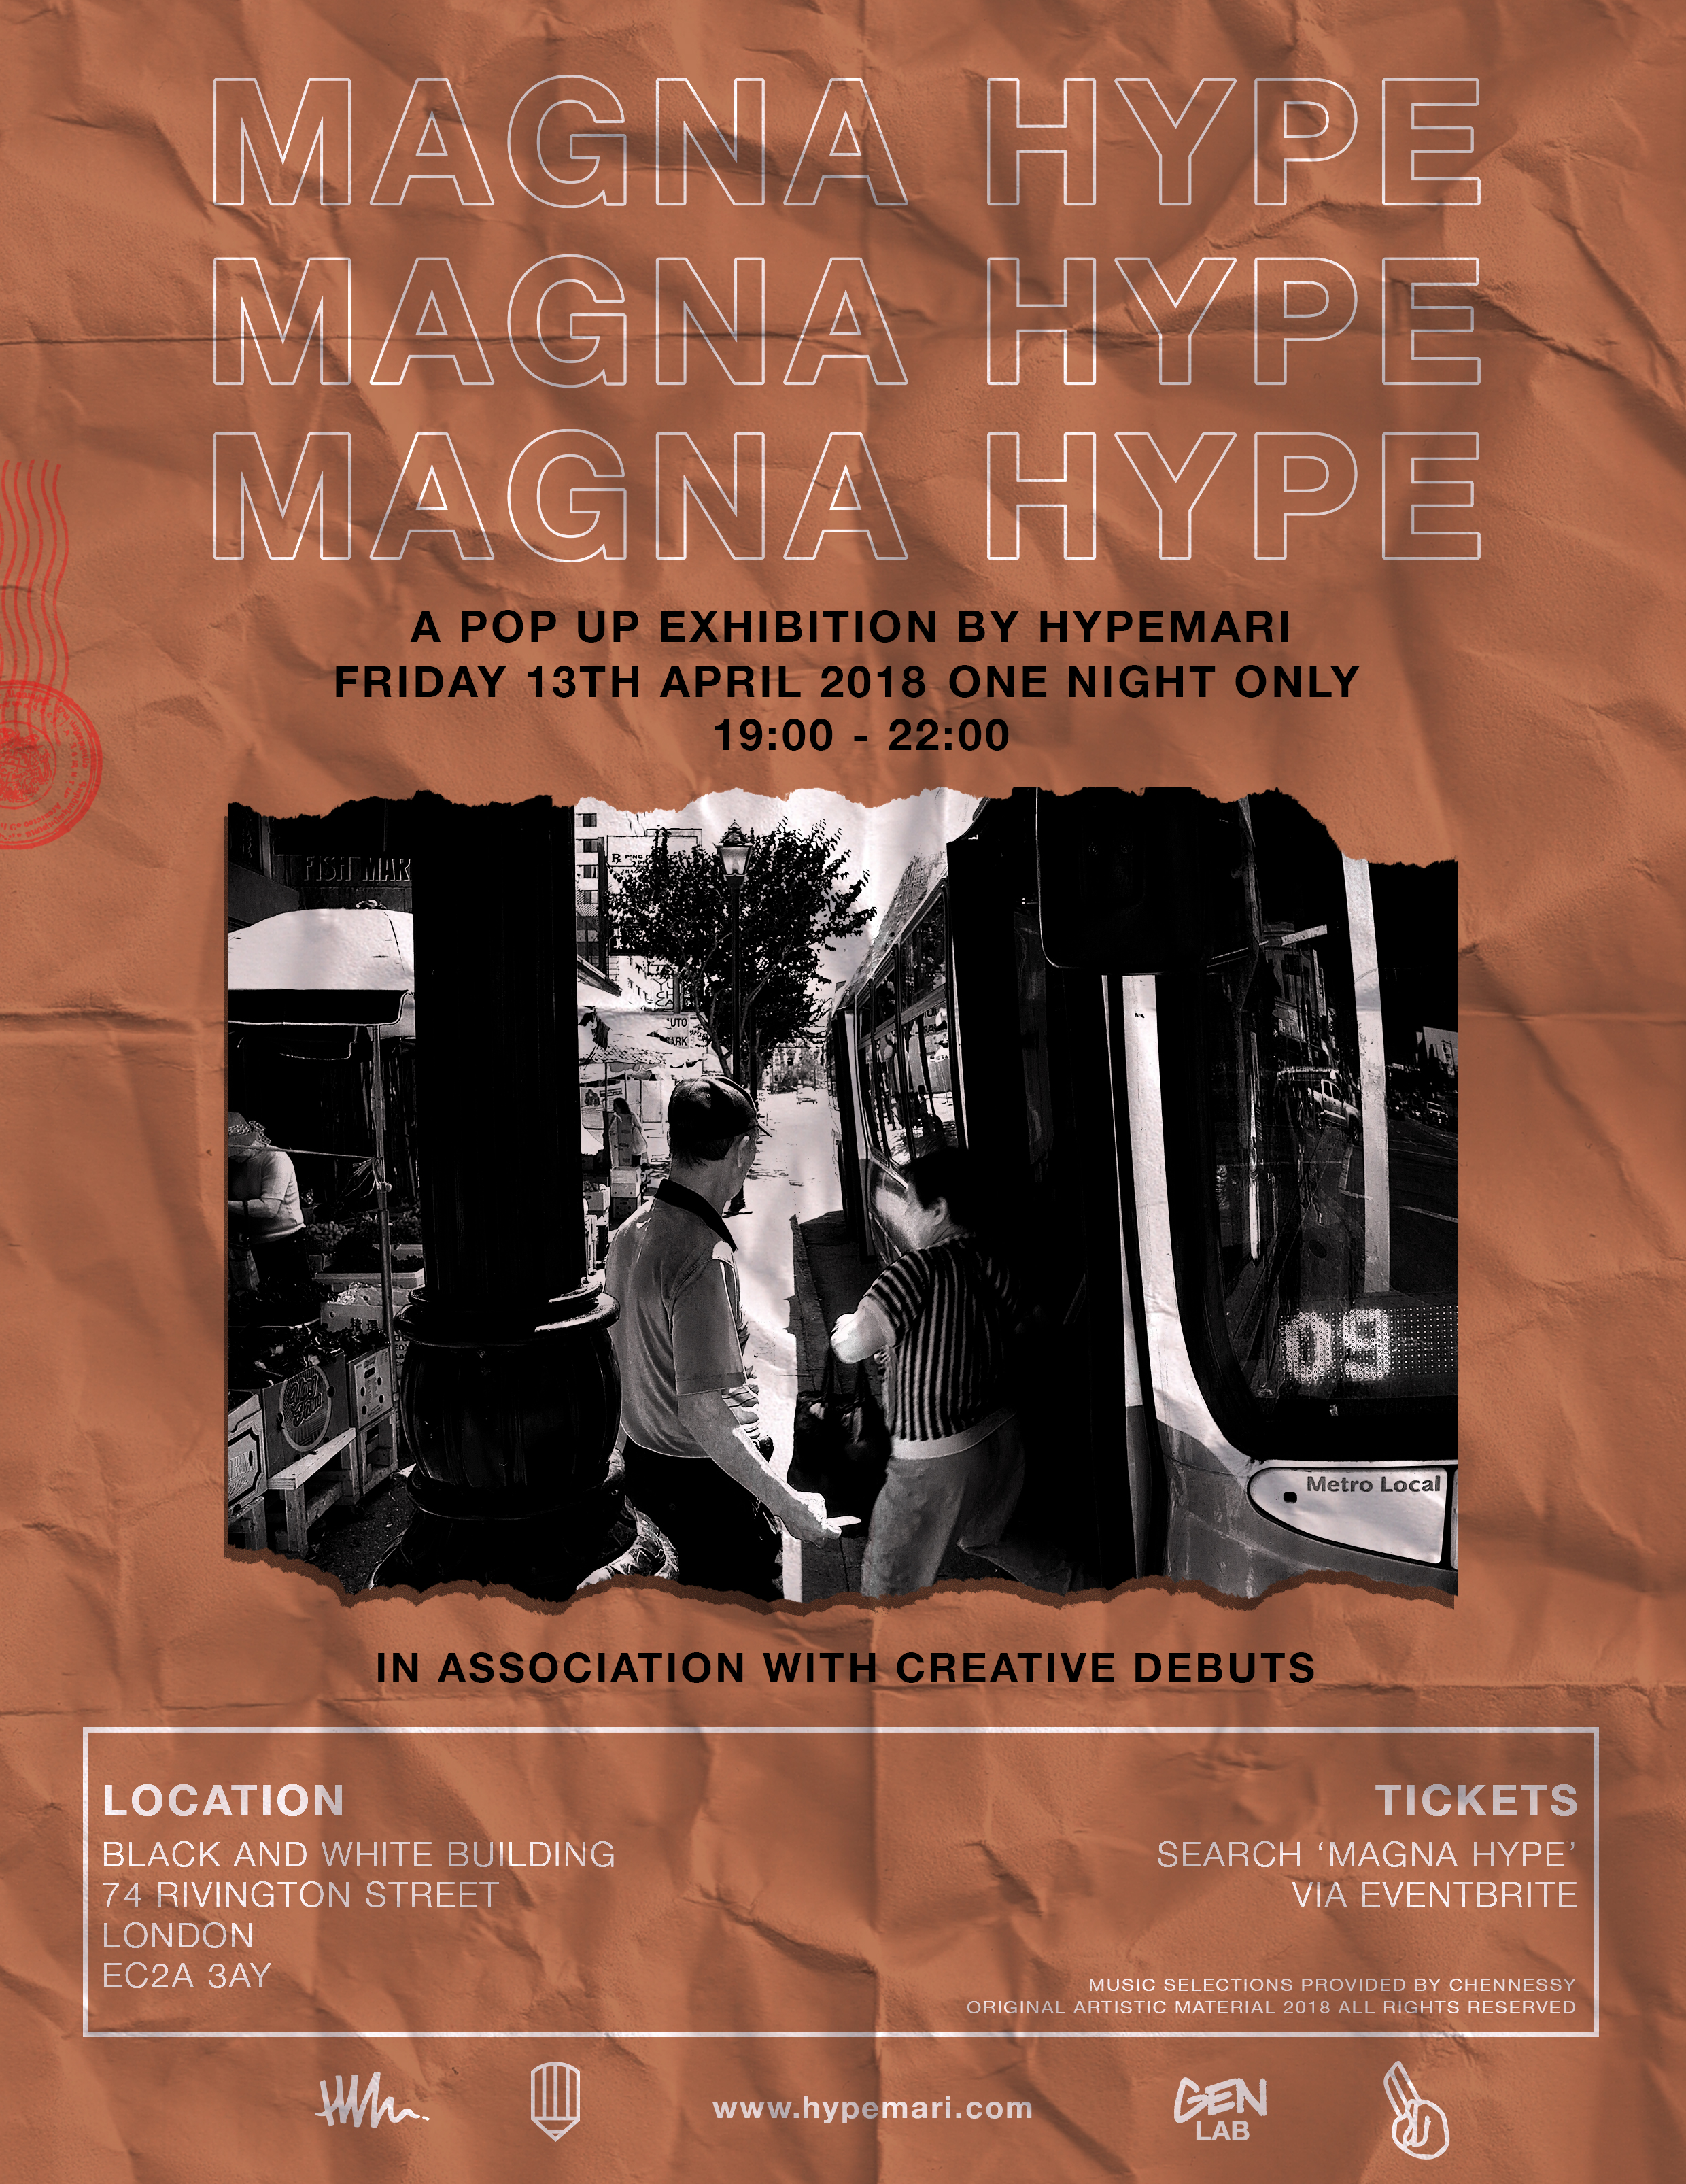 - A solo Pop up Exhibition by Hypemari, Magna Hype is a collection of his favourite works dating from 2014-2018. Featuring selected works from a variety subjects & locations. Magna Hype was Hypemari's 7th consecutive exhibition and 2nd show in London. Collaborating with Art agency Creative Debuts, the exhibition was a one night only affair in the heart of Shoreditch, East London.